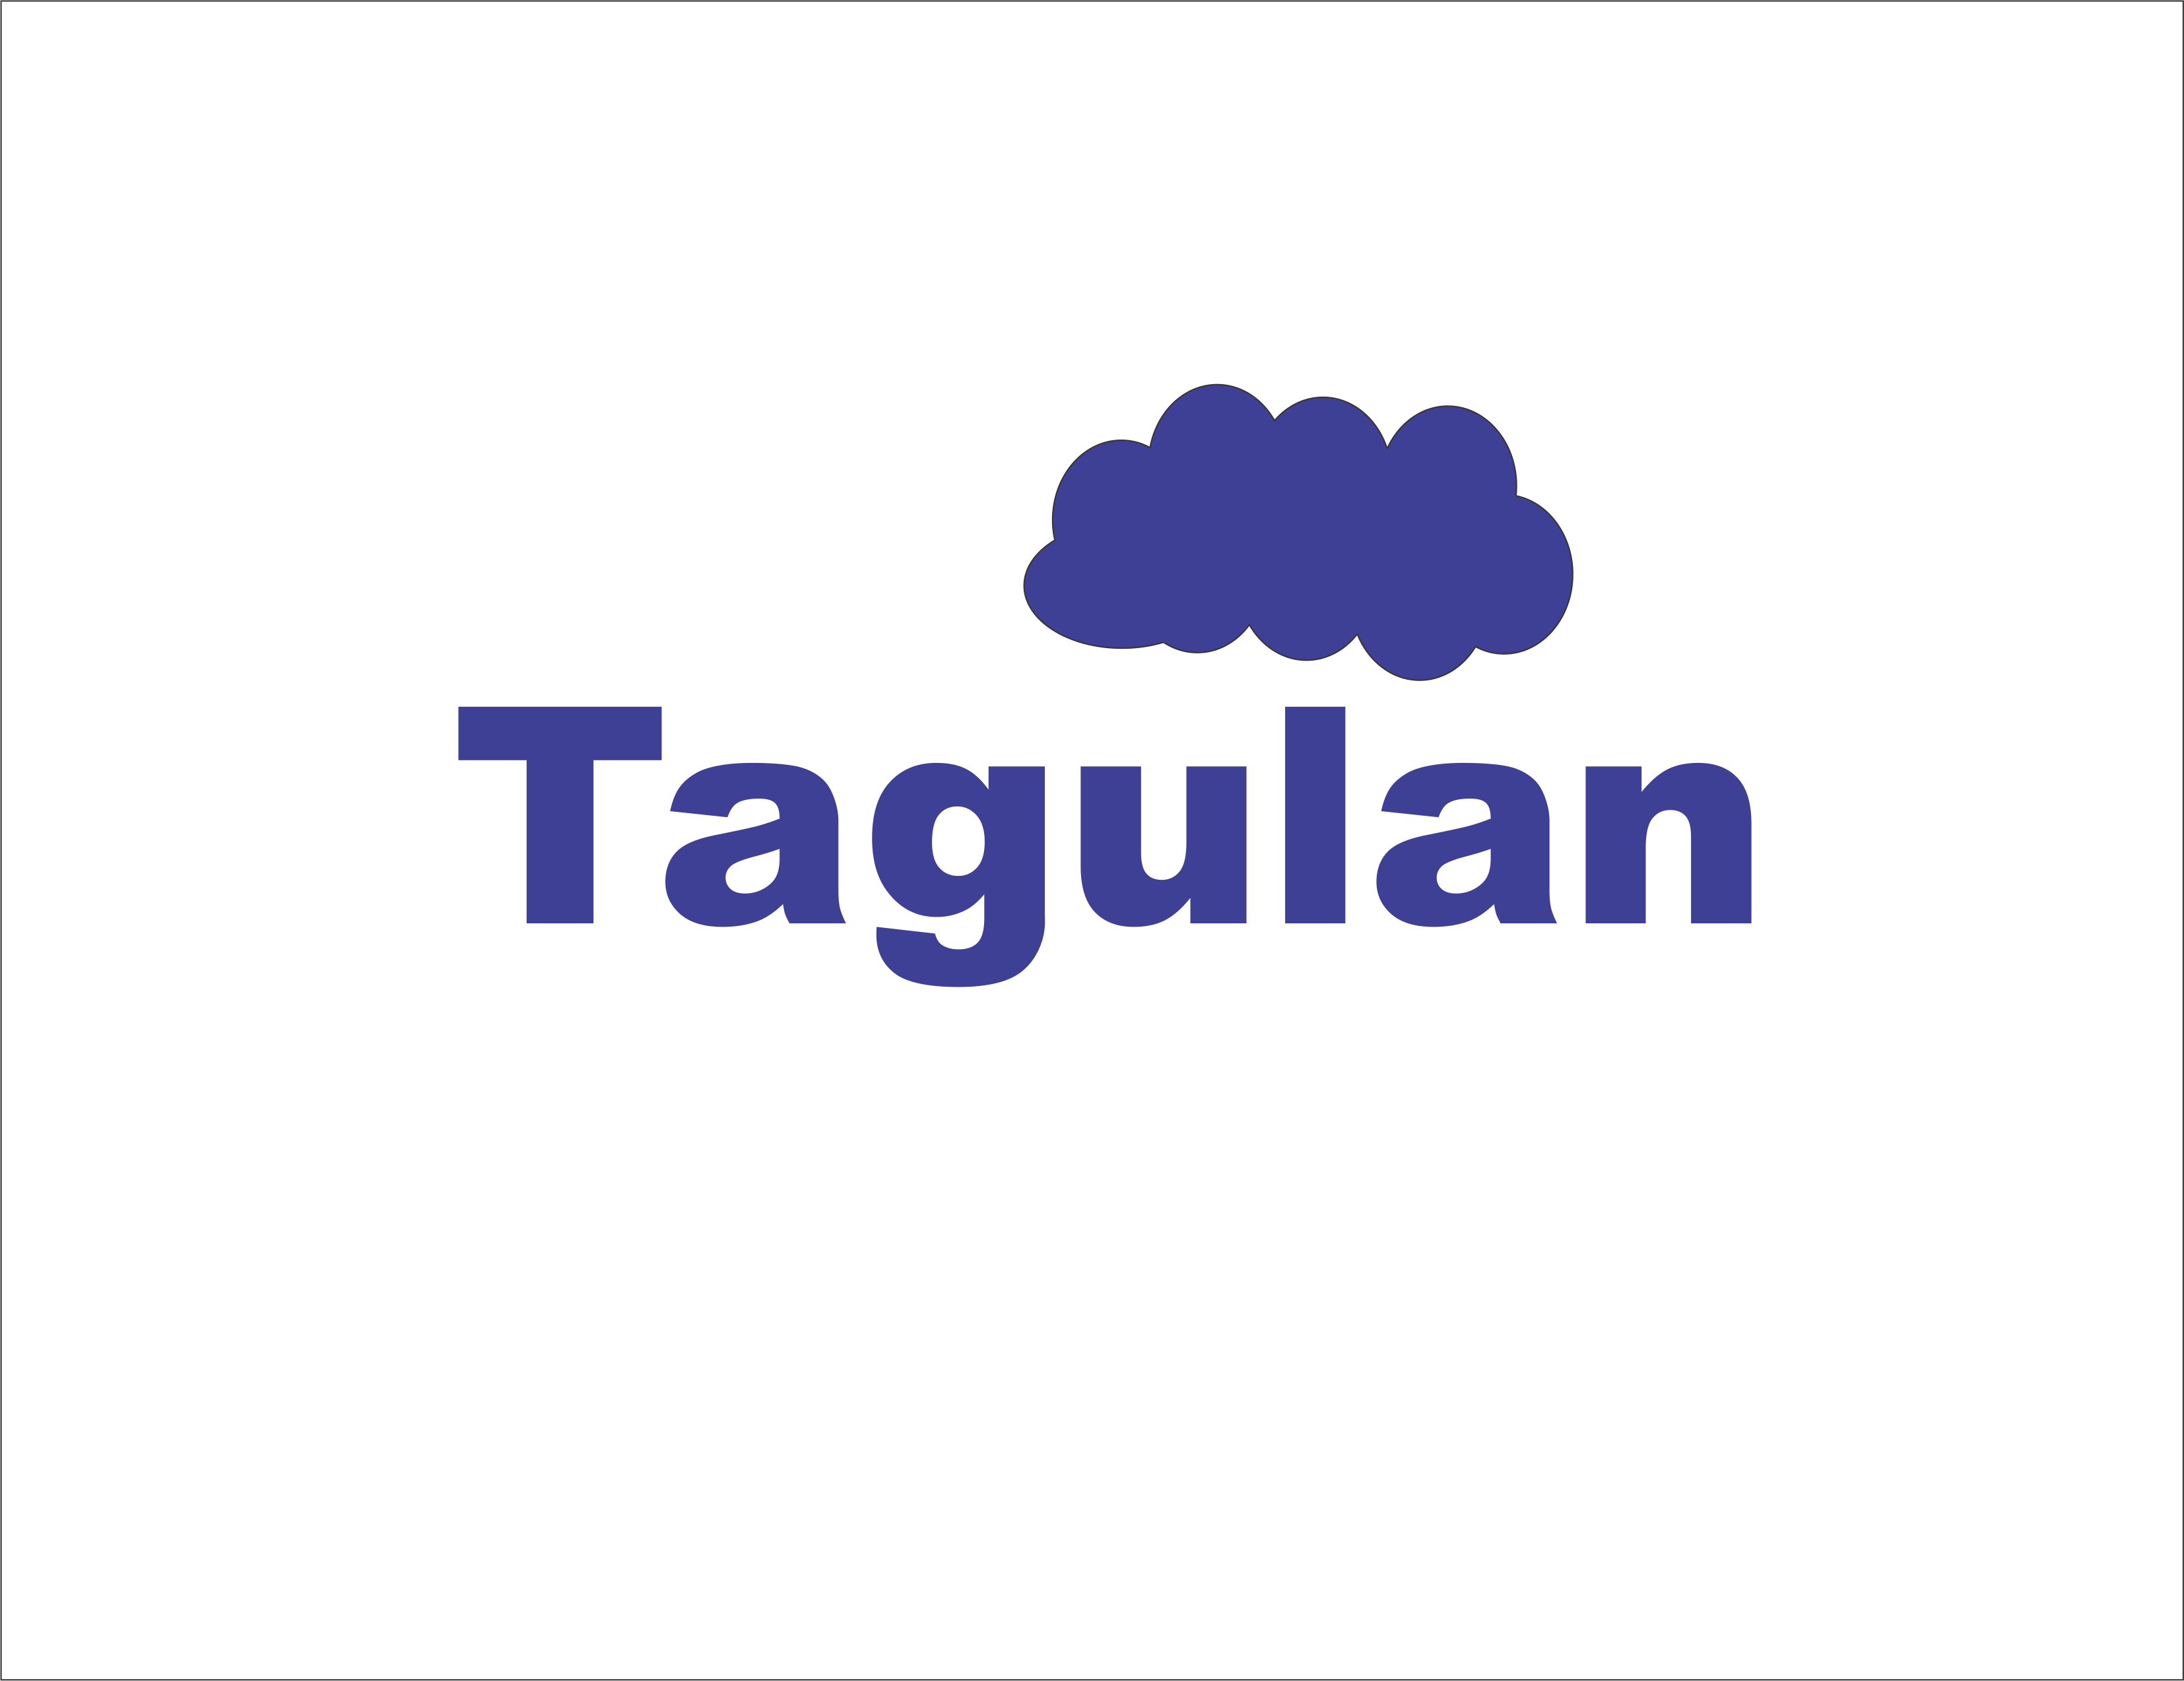 Logo Design by Romie Everwill - Entry No. 49 in the Logo Design Contest Unique Logo Design Wanted for Tagulan.